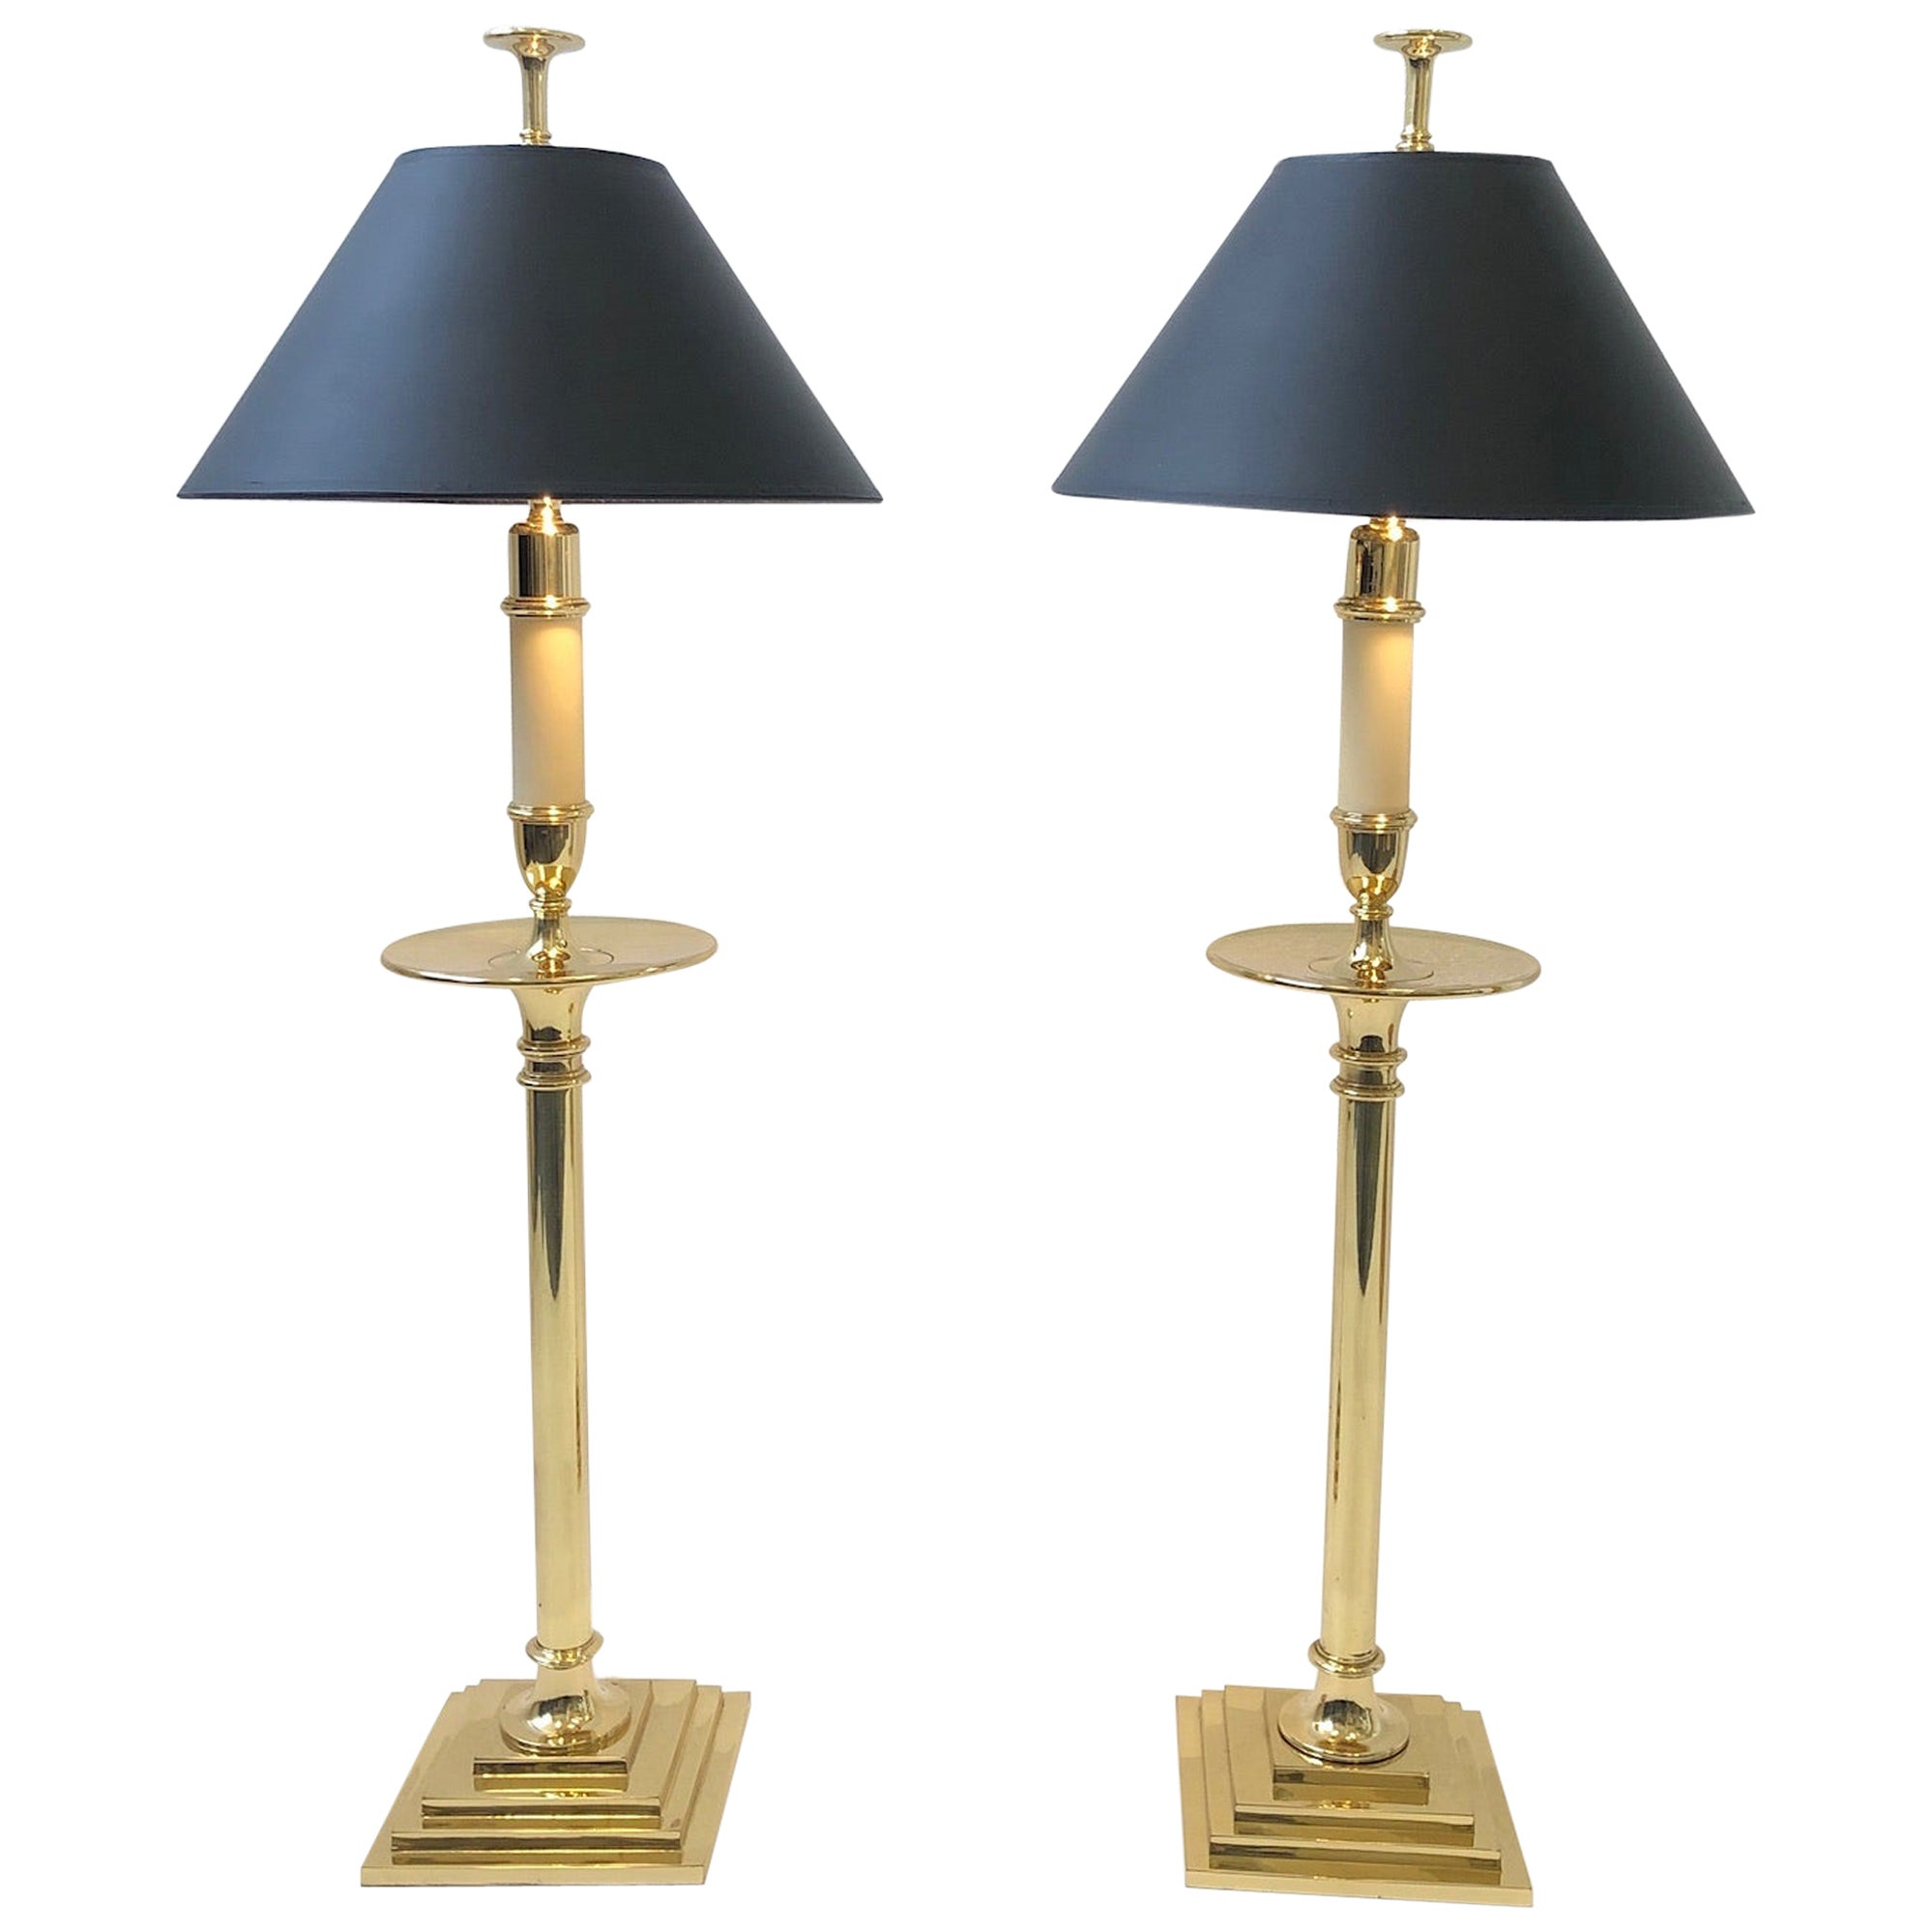 Pair of Brass Table Lamps by Chapman